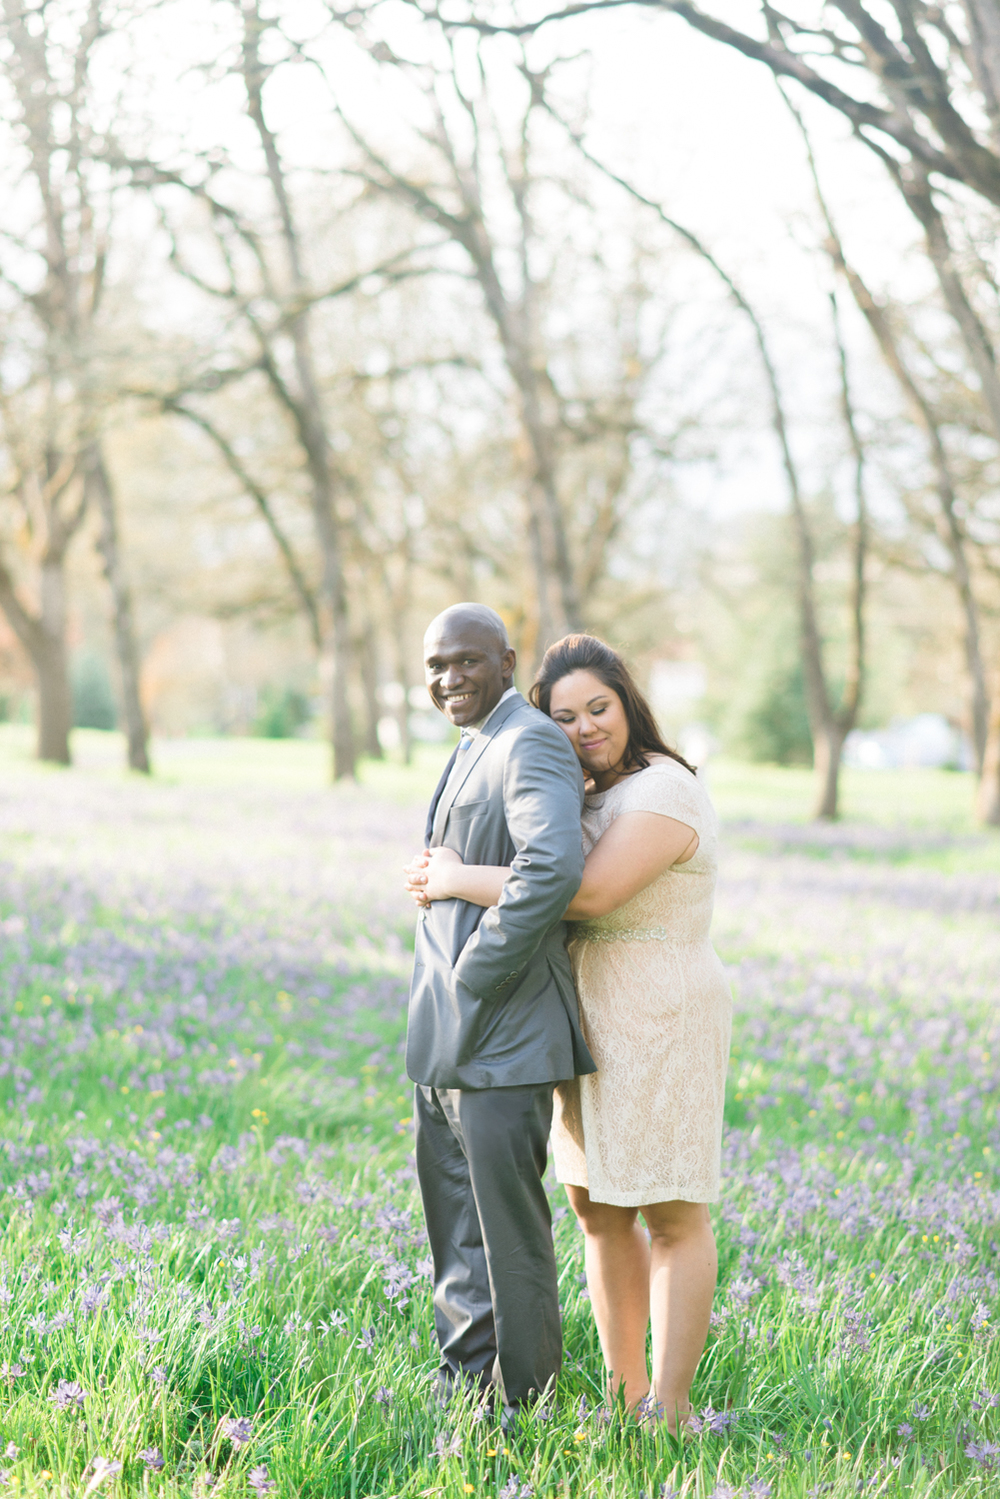 romantic-salem-engagement-photos-bush-park-shelley-marie-photo-7